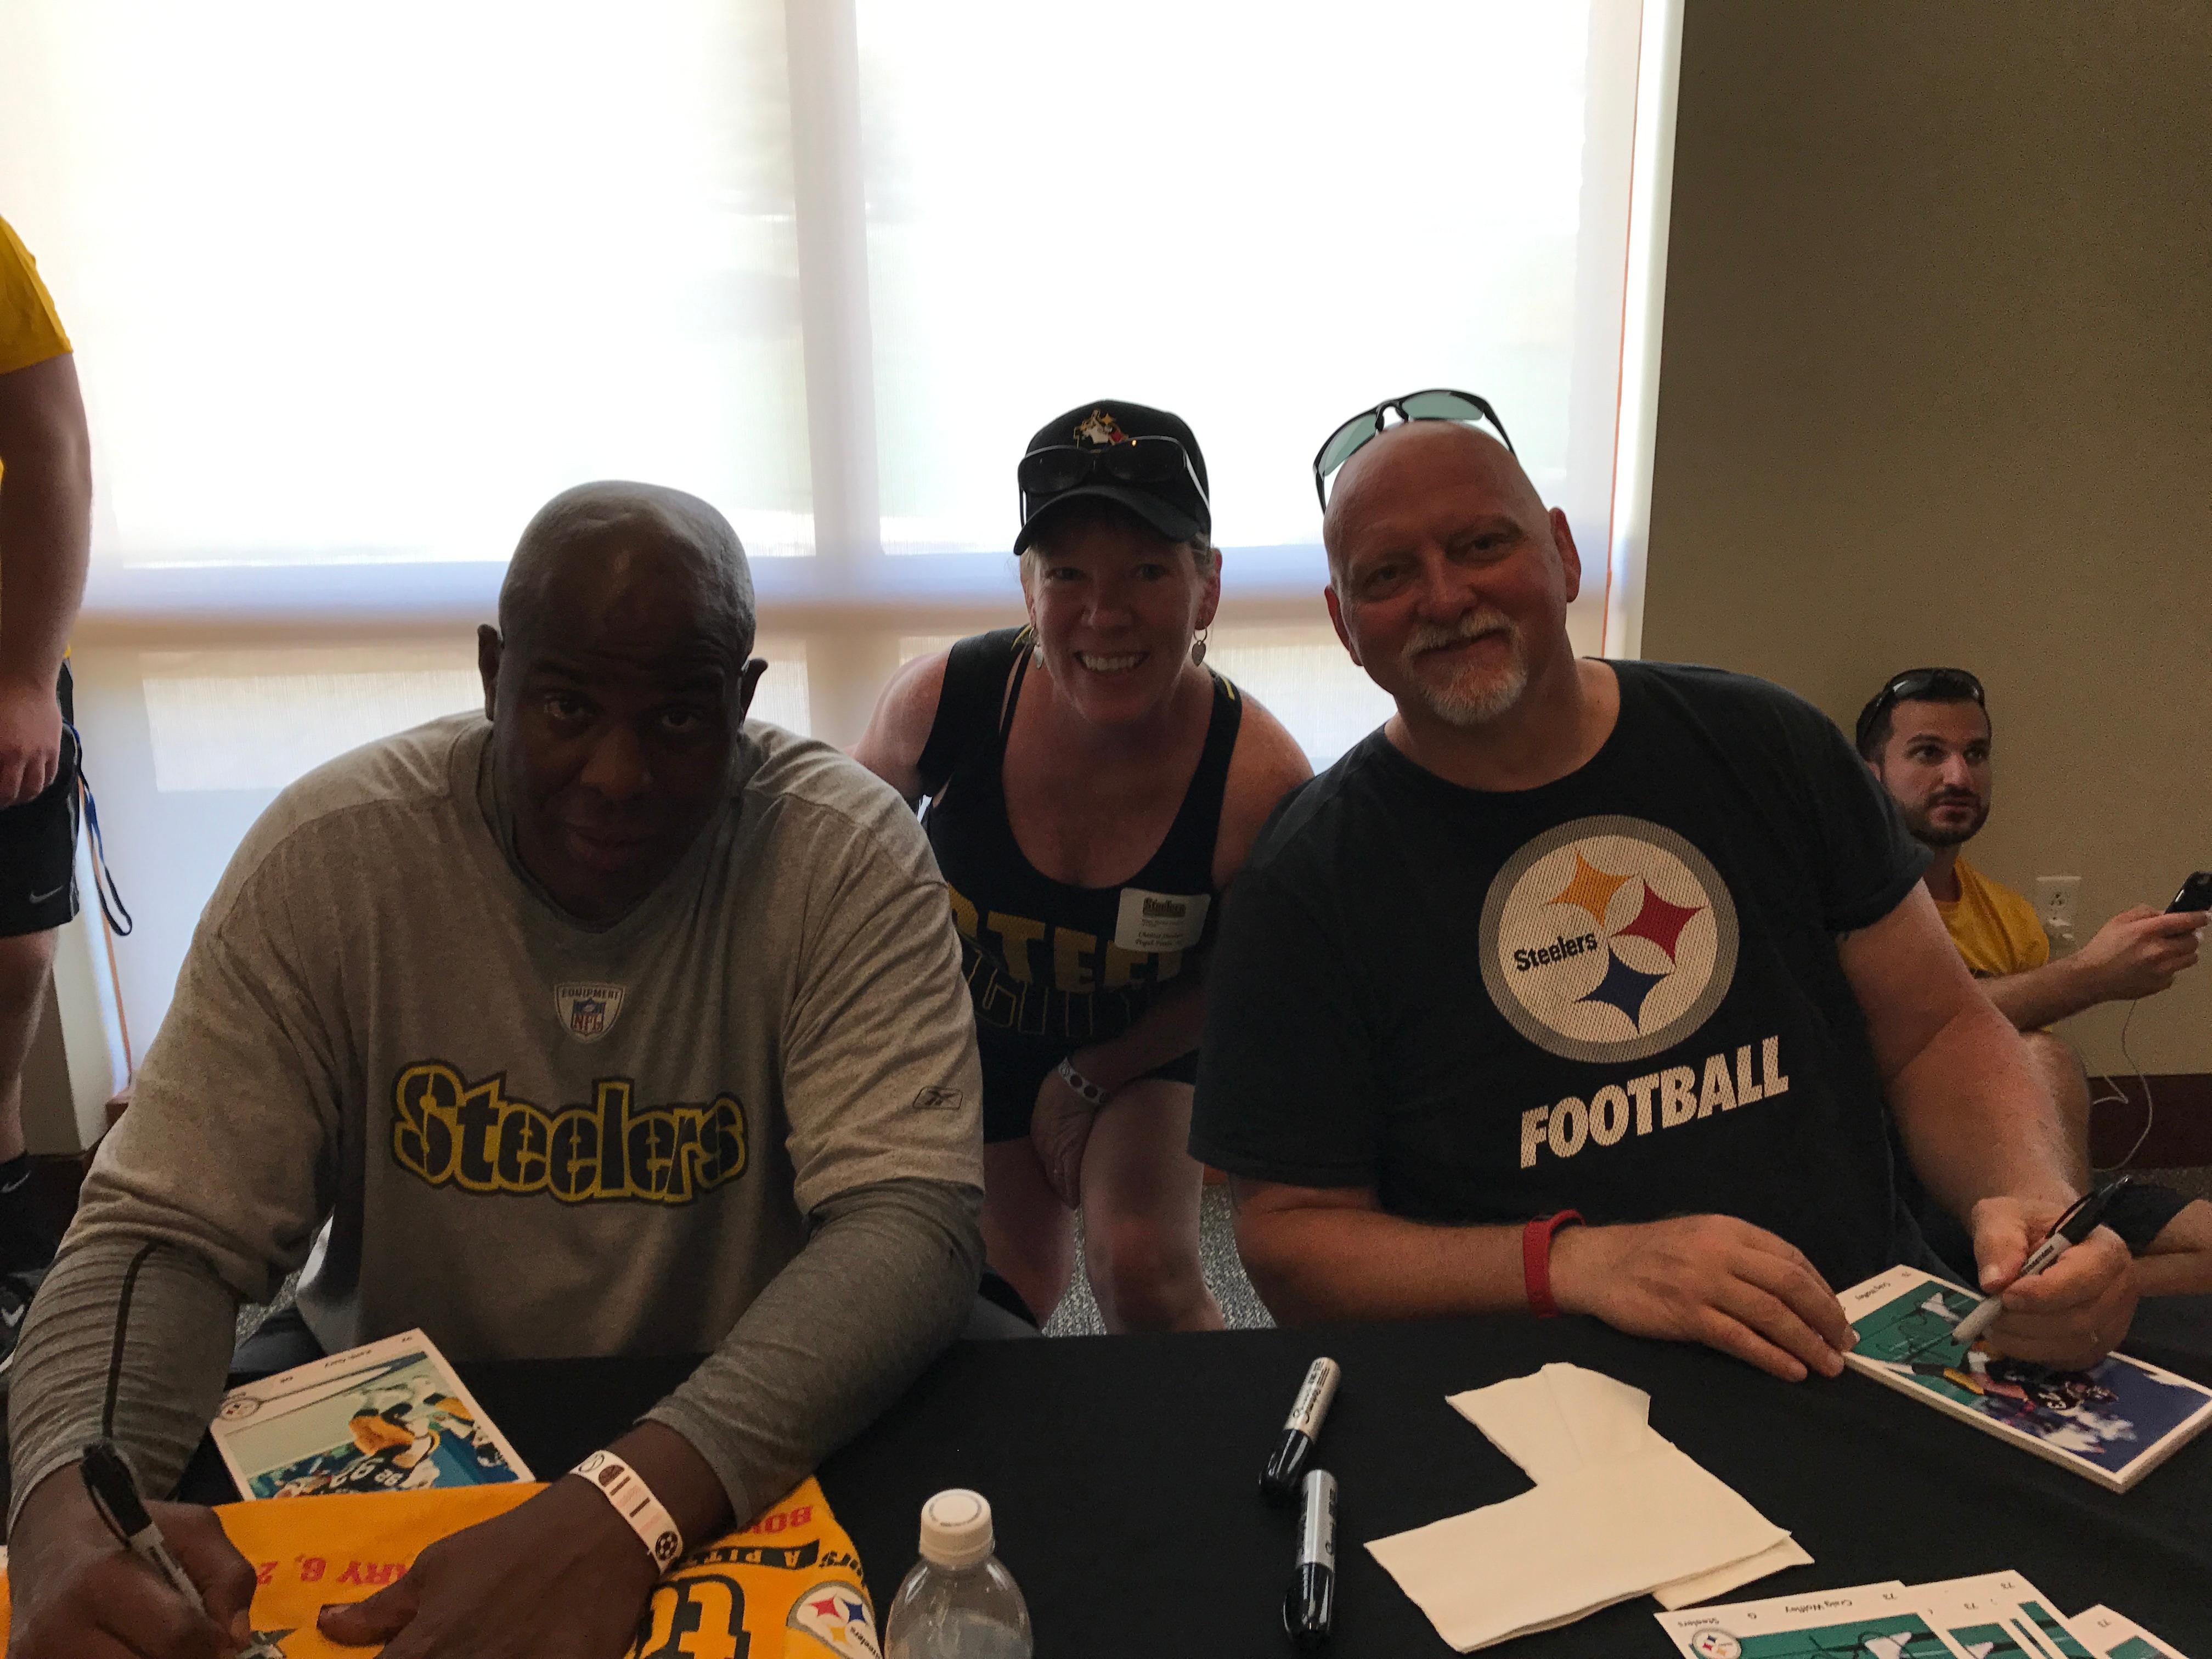 FILE - Chantel Sheehan of Asheville said she gained enough points with the Steelers Fan Club to be entered into a special raffle. The raffle was for a pregame experience at the Steelers football game against the Browns on Sunday, Dec. 31. (Photo credit: Chantel Sheehan)